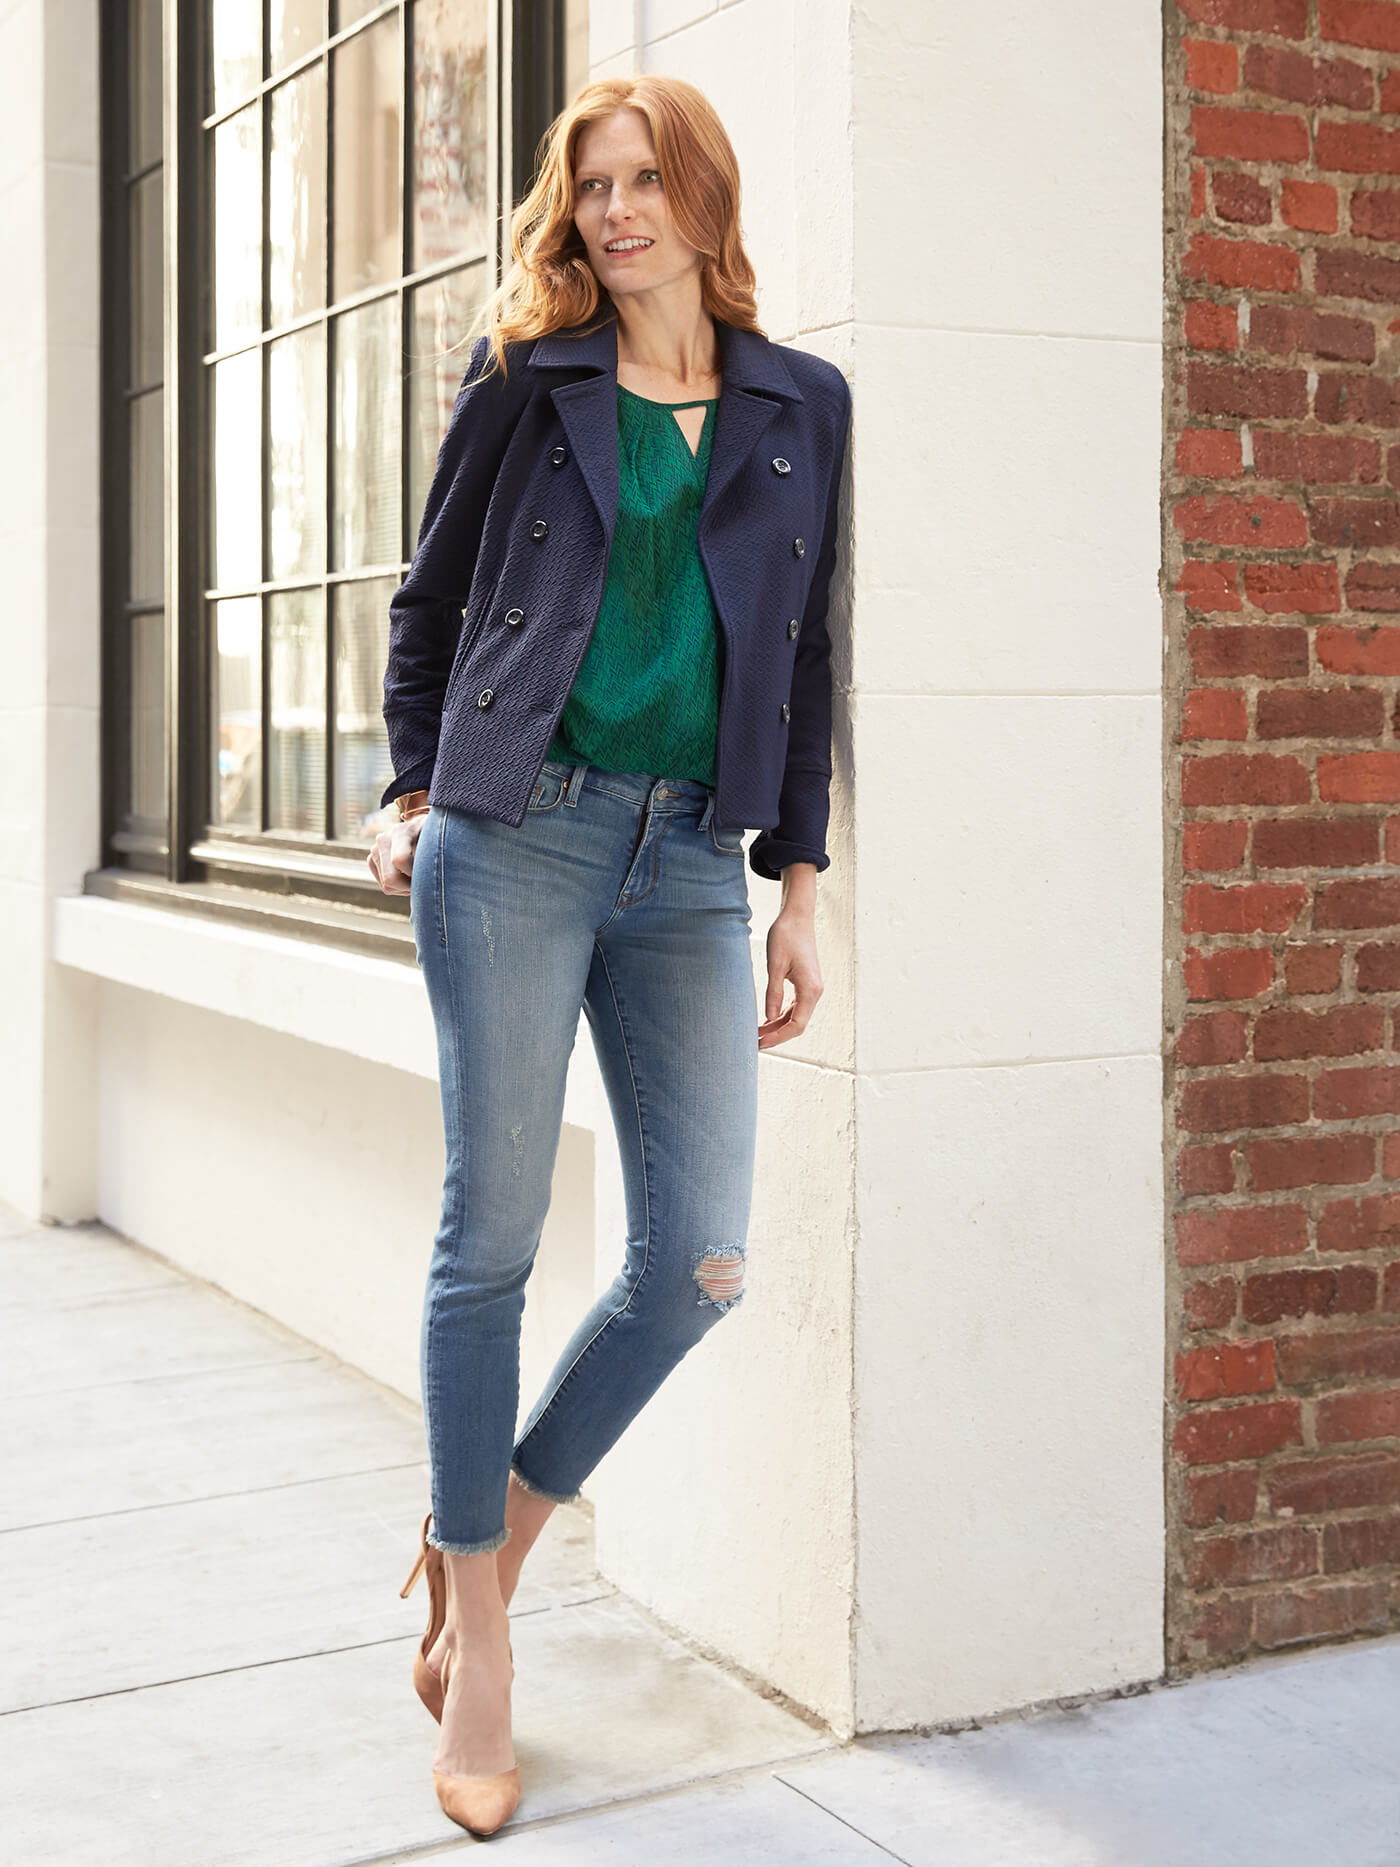 When should i tuck in my shirt stitch fix style for Skinny jeans with shirt